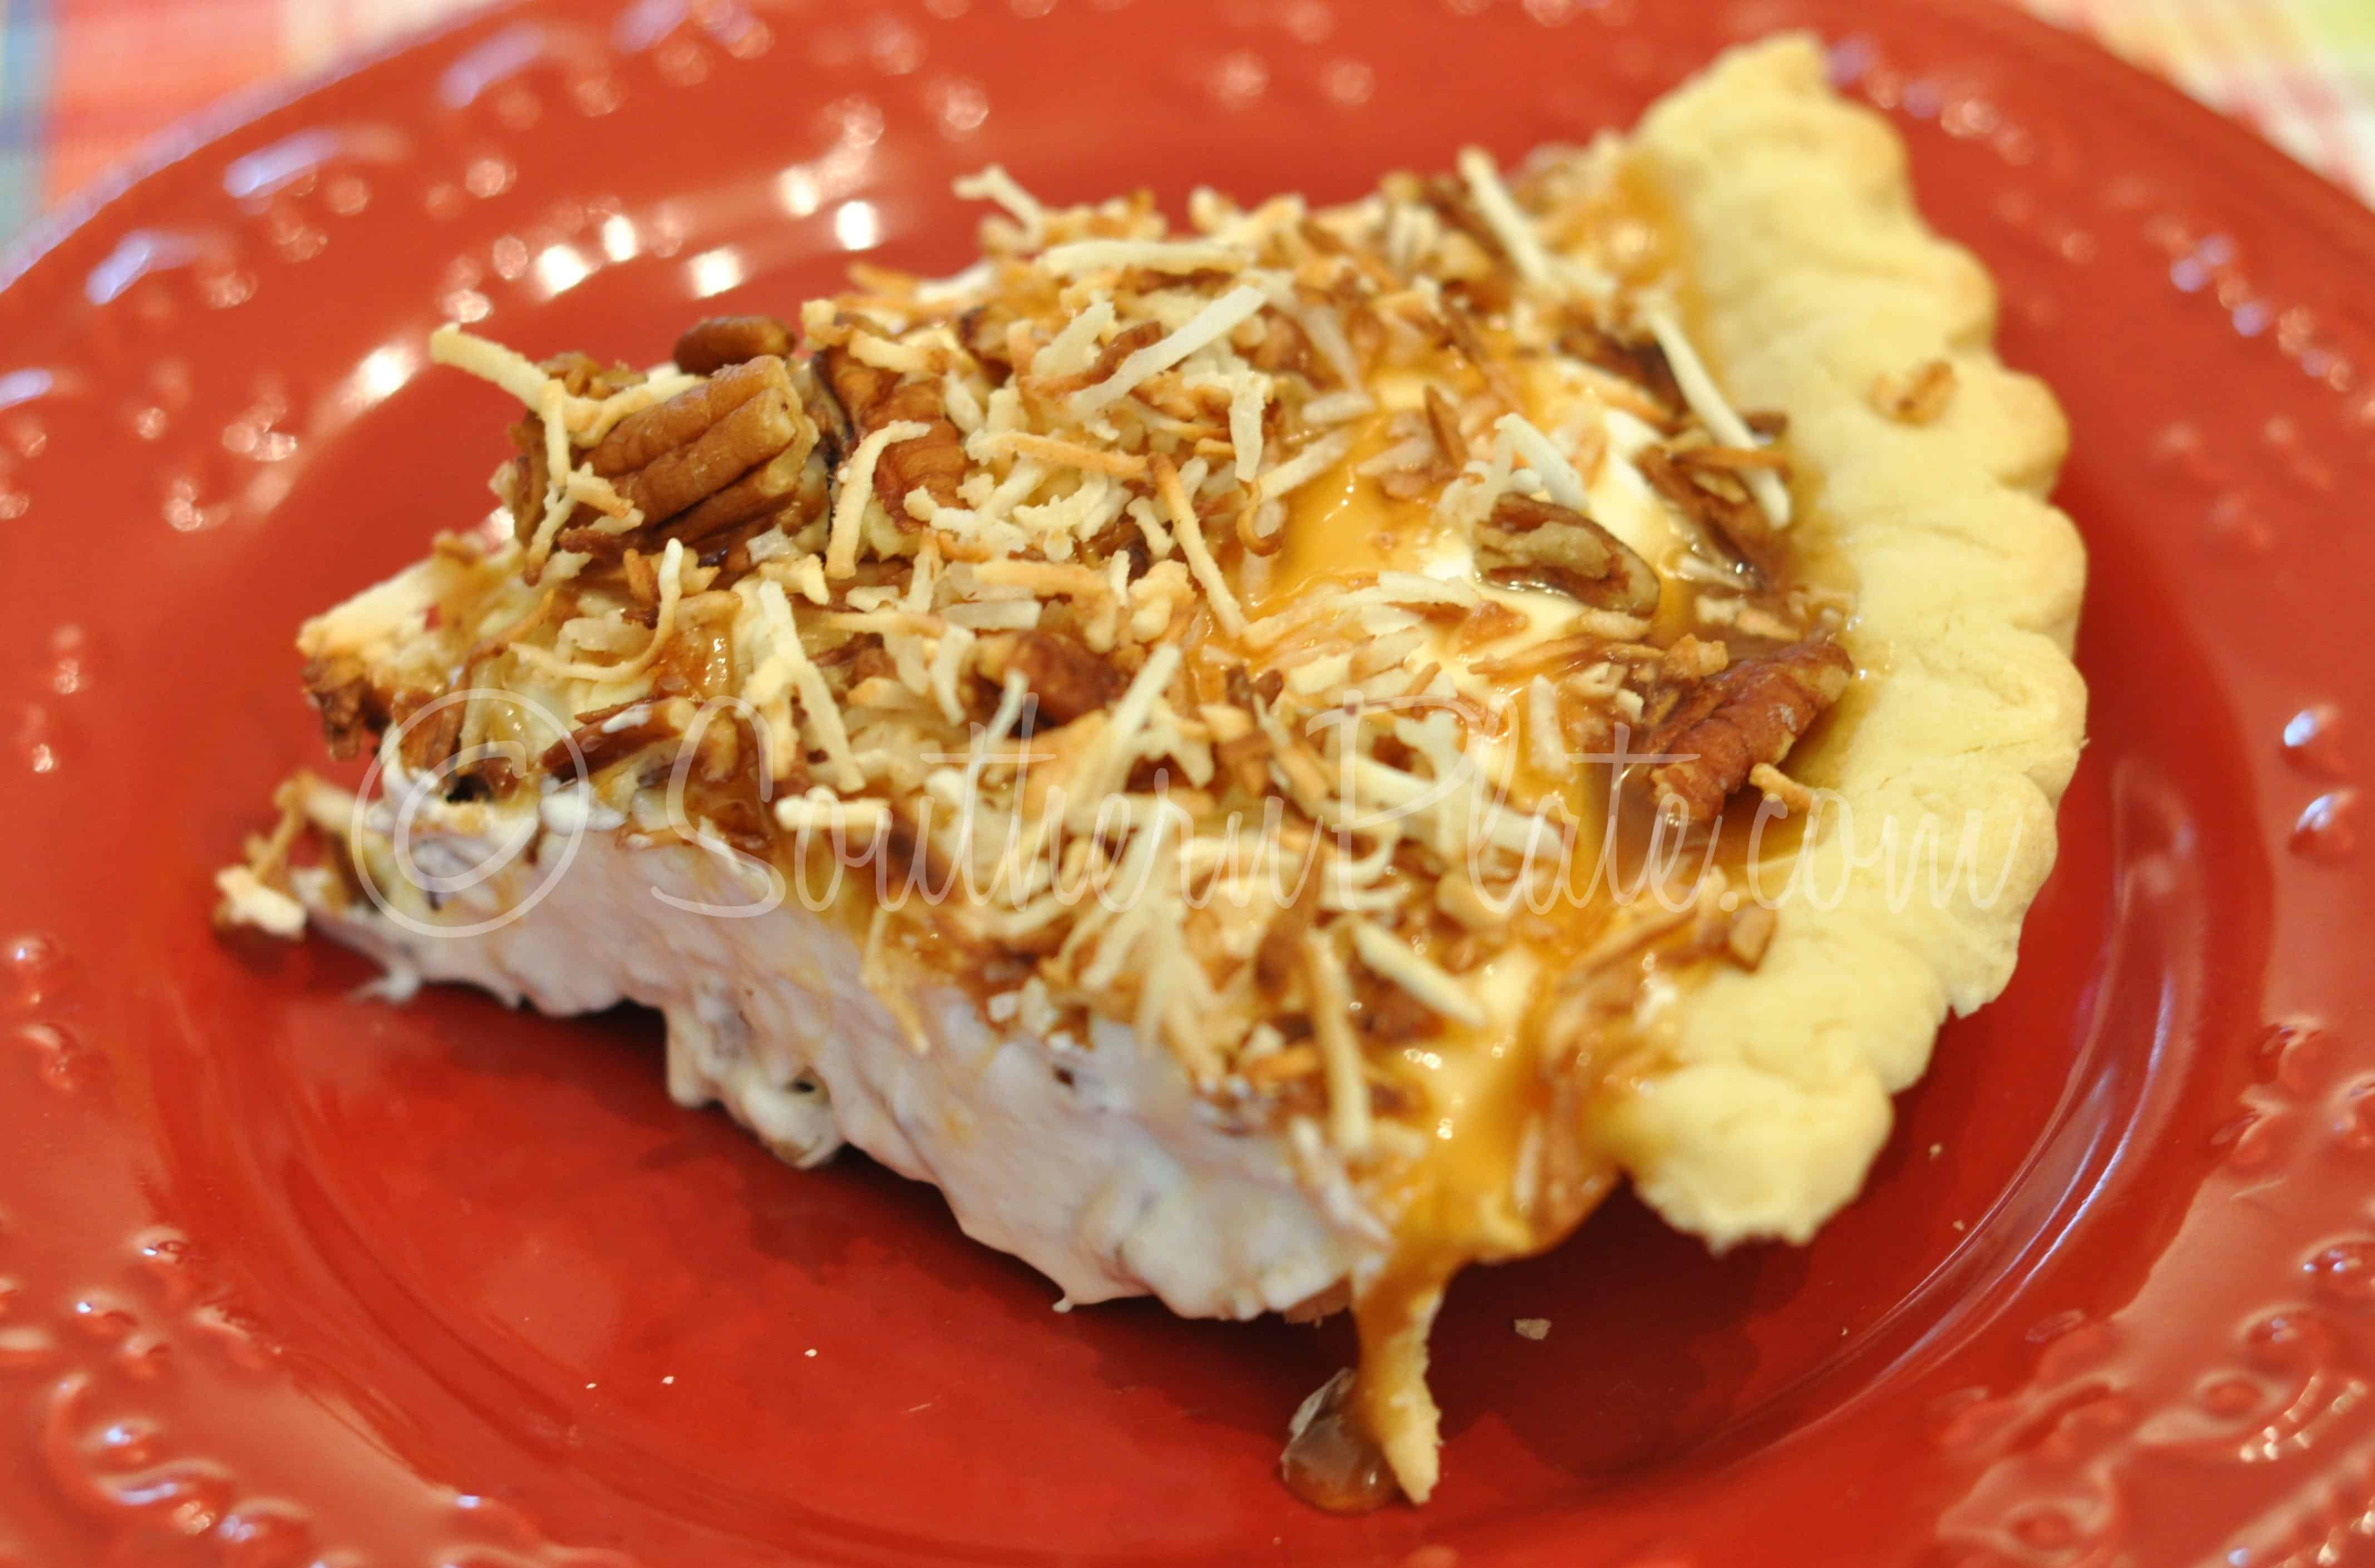 Ashley Mac's Coconut Caramel Pie